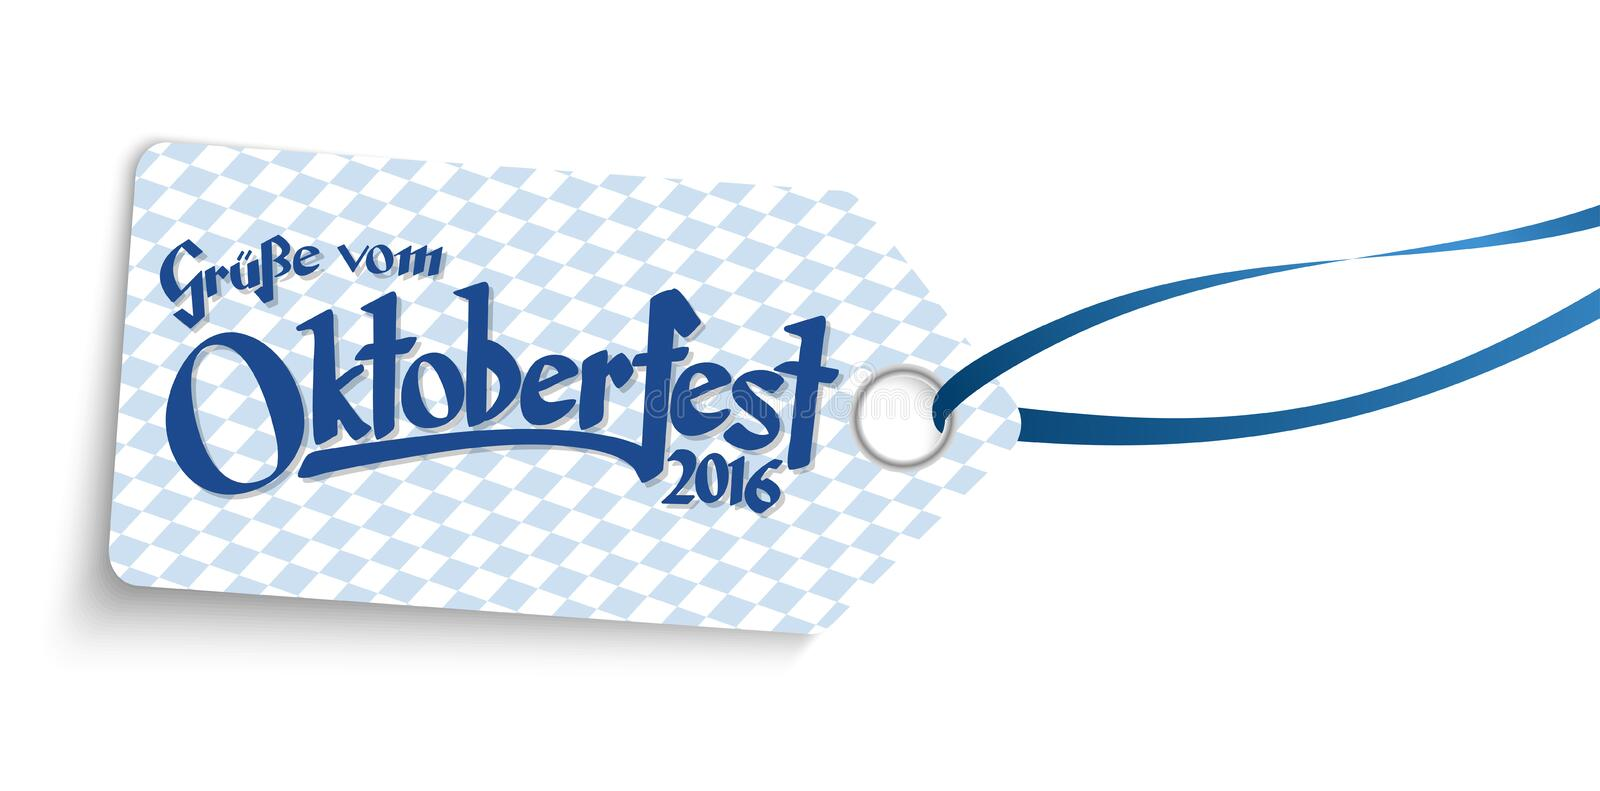 Hangtag with text greetings from oktoberfest 2016 stock vector download hangtag with text greetings from oktoberfest 2016 stock vector illustration of hangtag greetings m4hsunfo